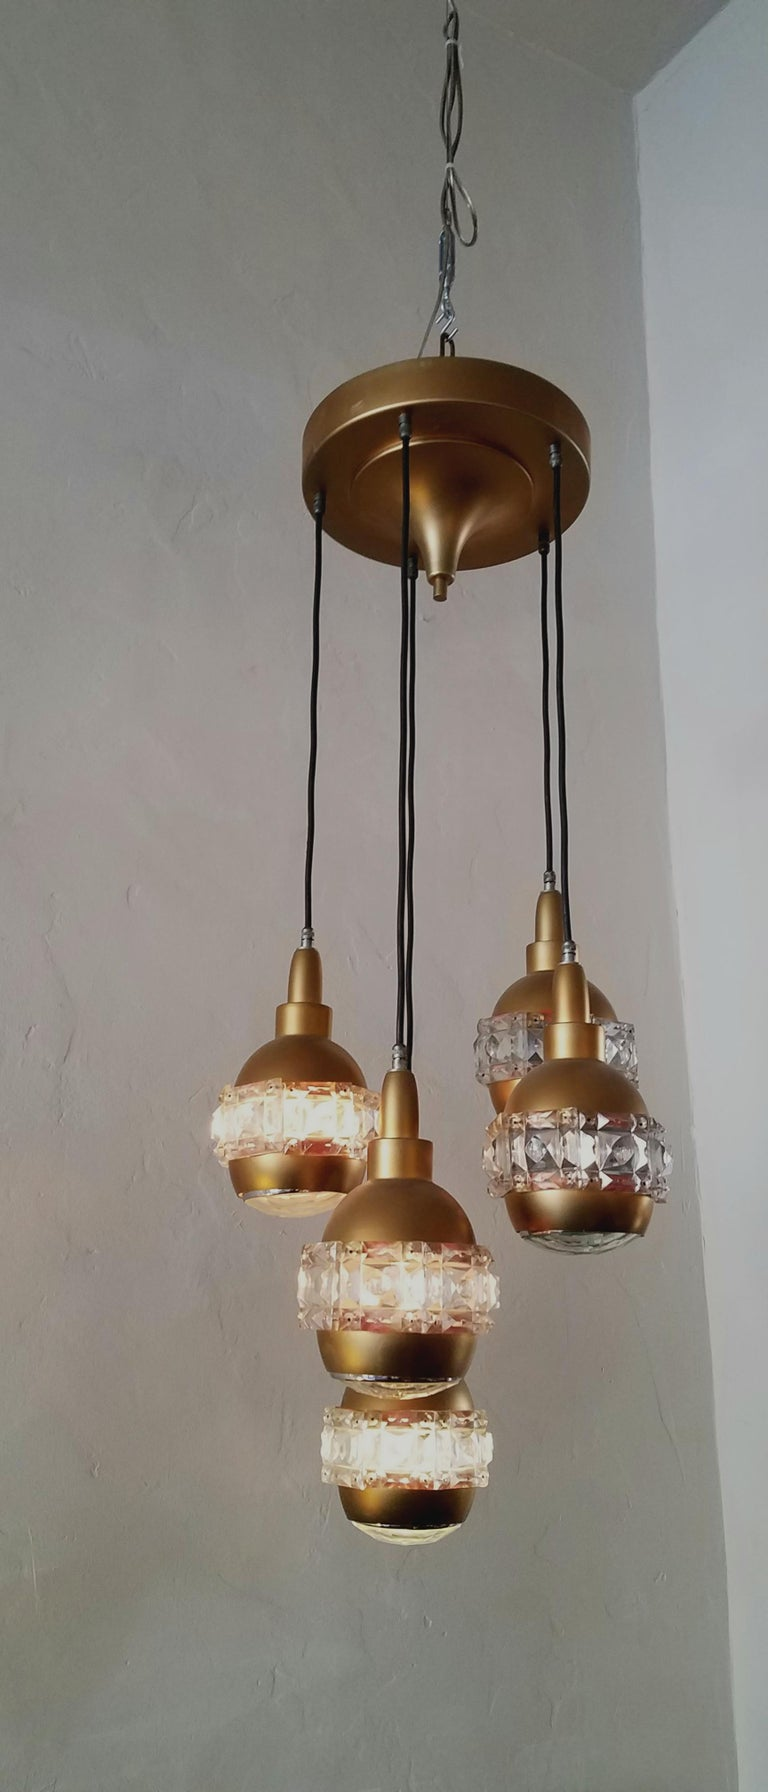 Italian Midcentury Chandelier Attributed to O'luce In Good Condition For Sale In Los Angeles, CA